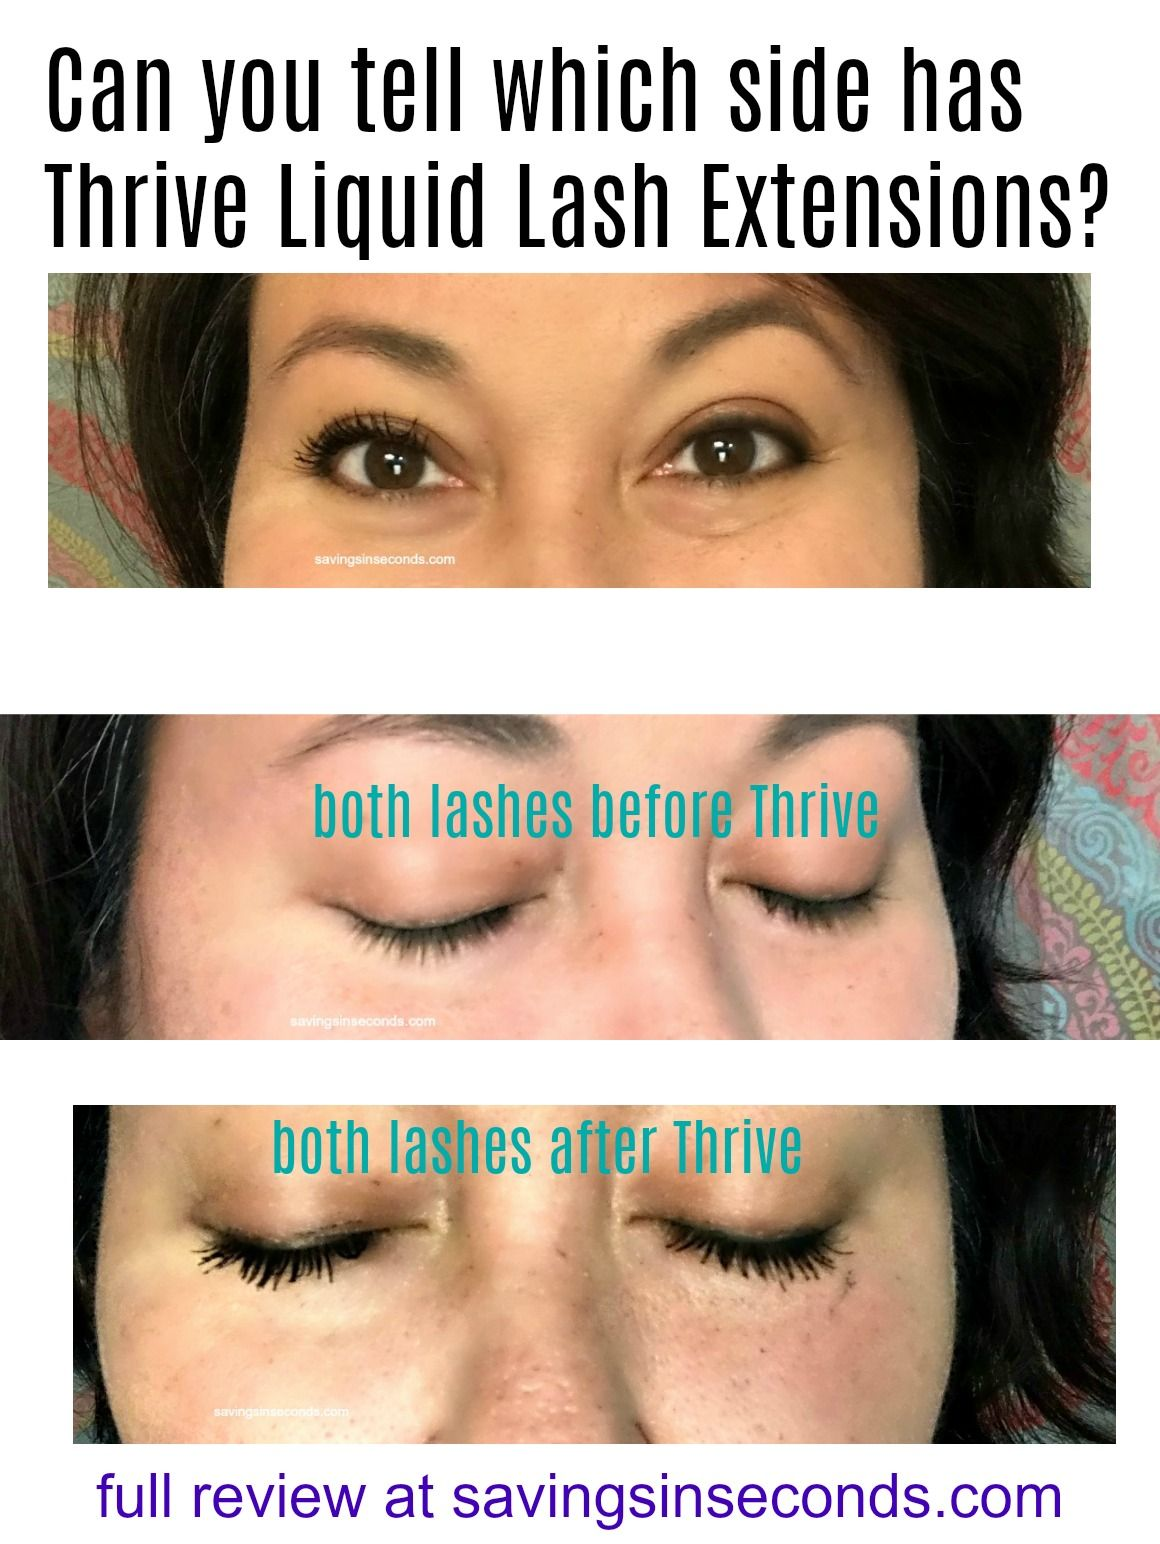 2e966e95bc3 Savings in Seconds | Thrive Causemetics Liquid Lash Extensions Mascara  review $10 off $50 purchase code #Giveaway